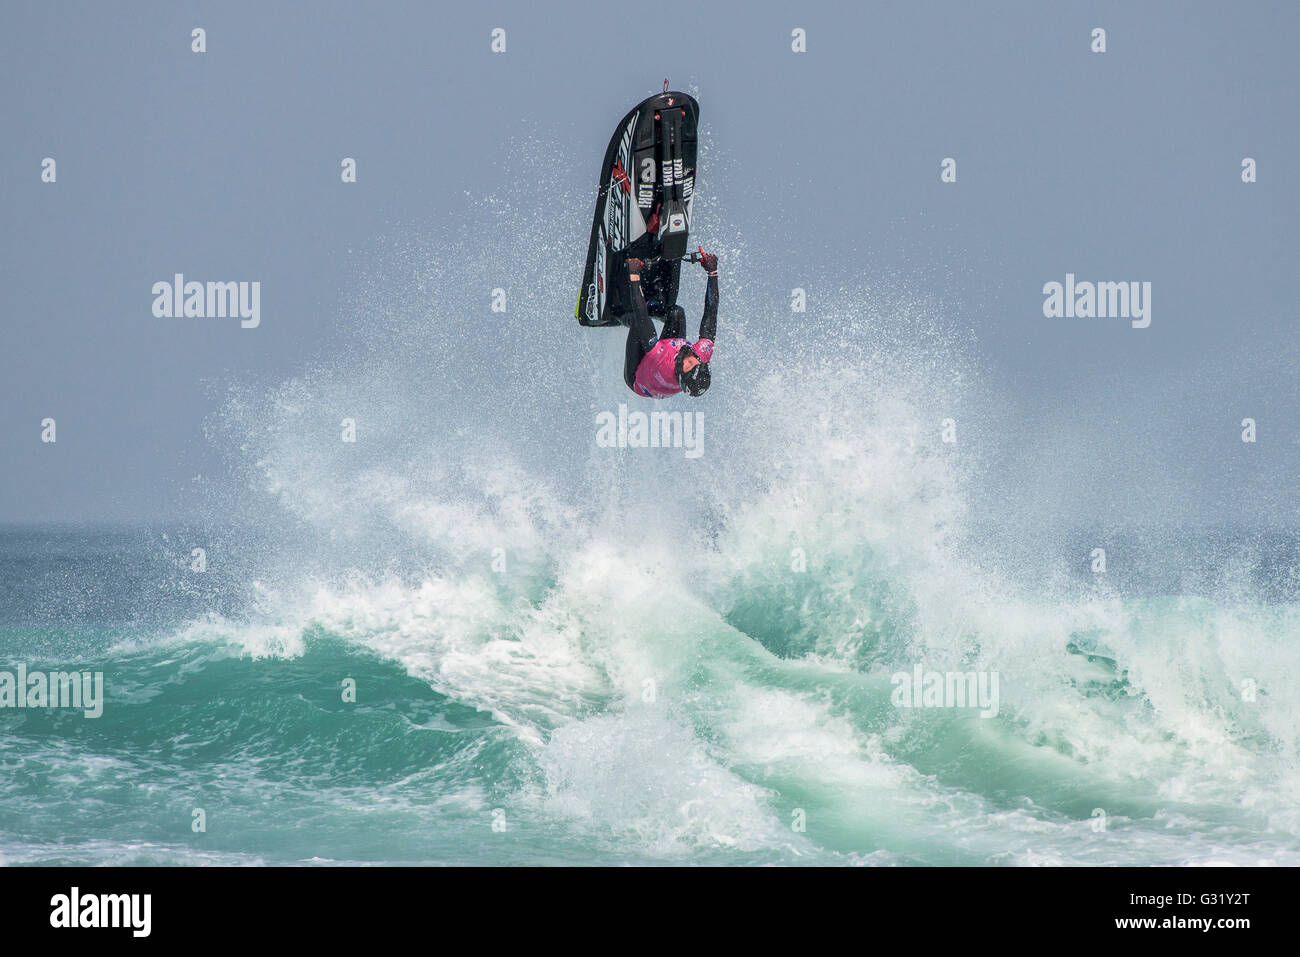 Fistral, Newquay, Cornwall. 6th June, 2016.  A Jet-skier explodes from the sea as he performs a spectacular stunt - Stock Image